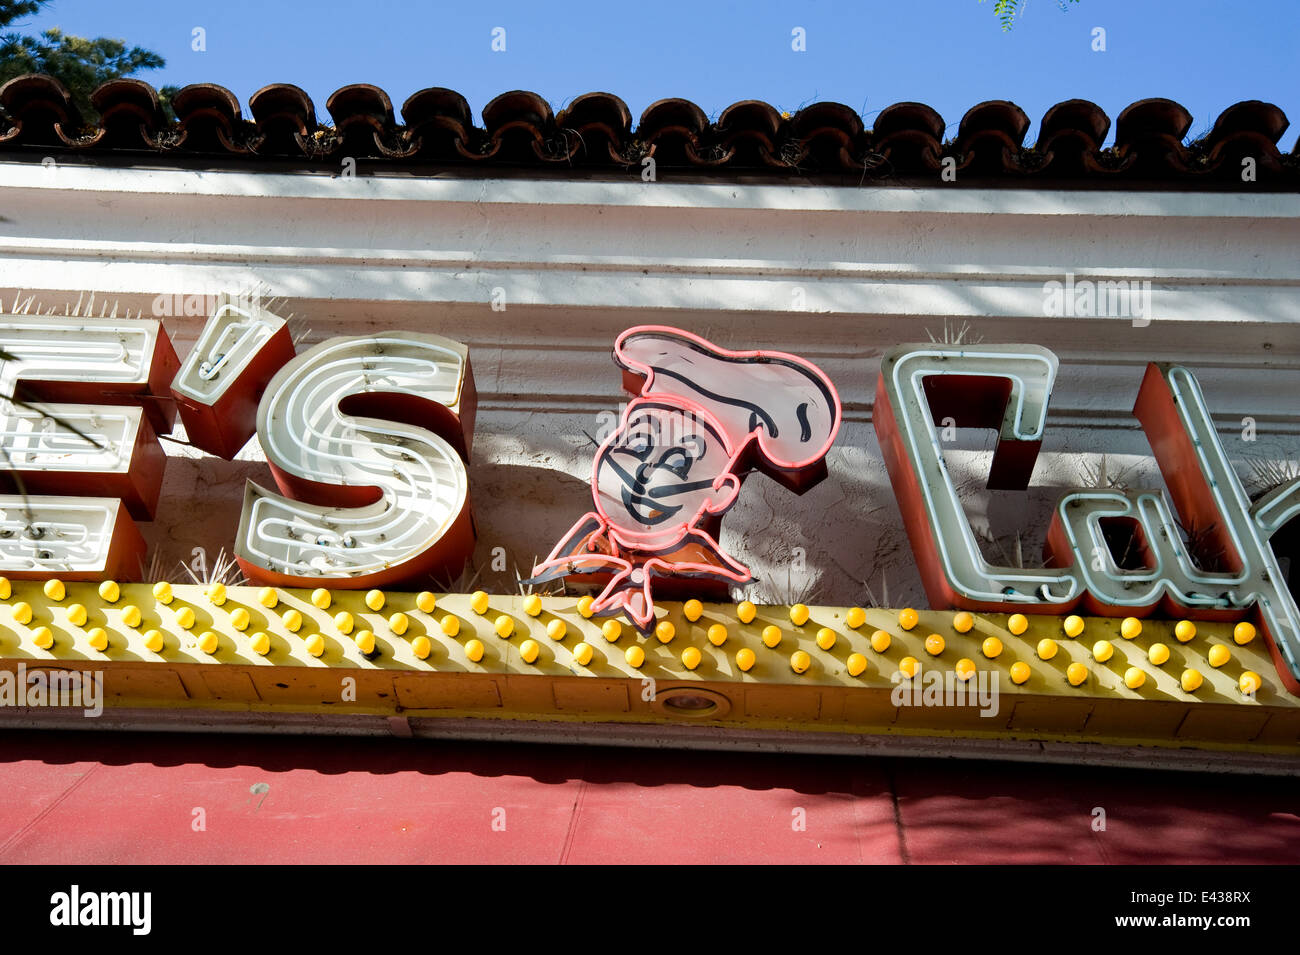 Neon sign at Joe's Cafe on State Street in Santa Barbara, CA - Stock Image